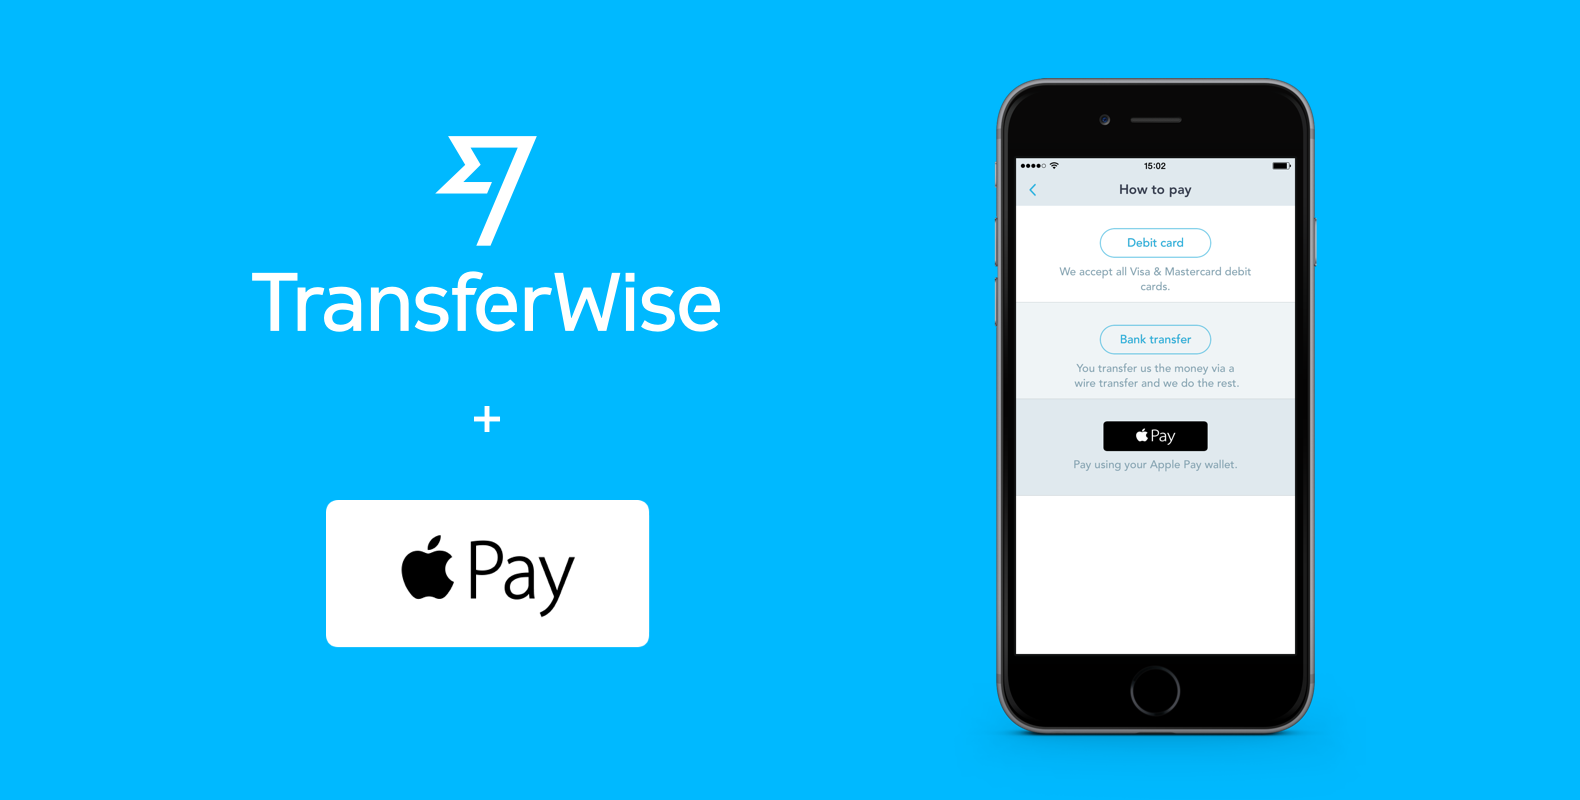 TransferWise now supports Apple Pay - TransferWise